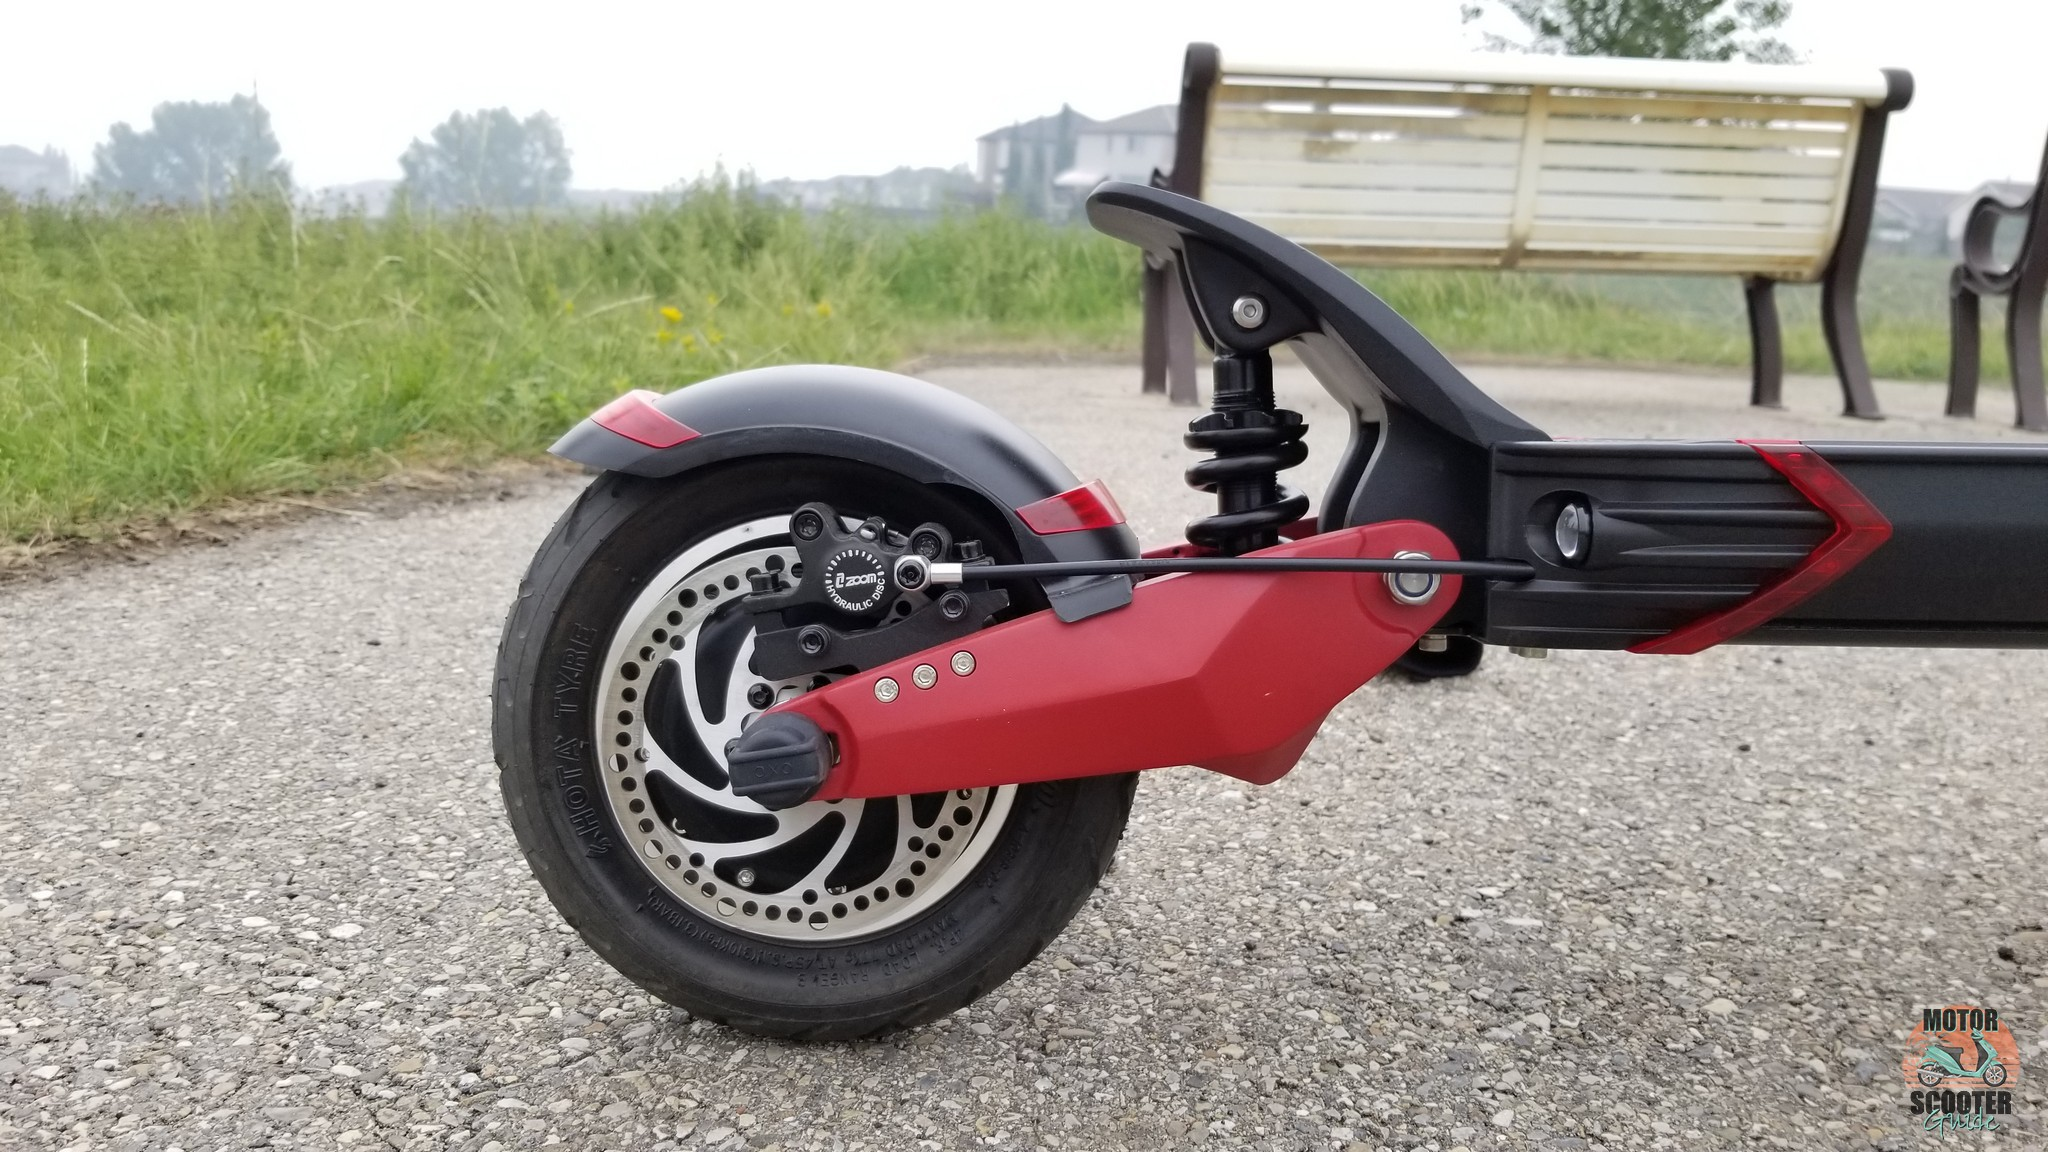 Closeup of rear wheel showing off disc brakes and suspension